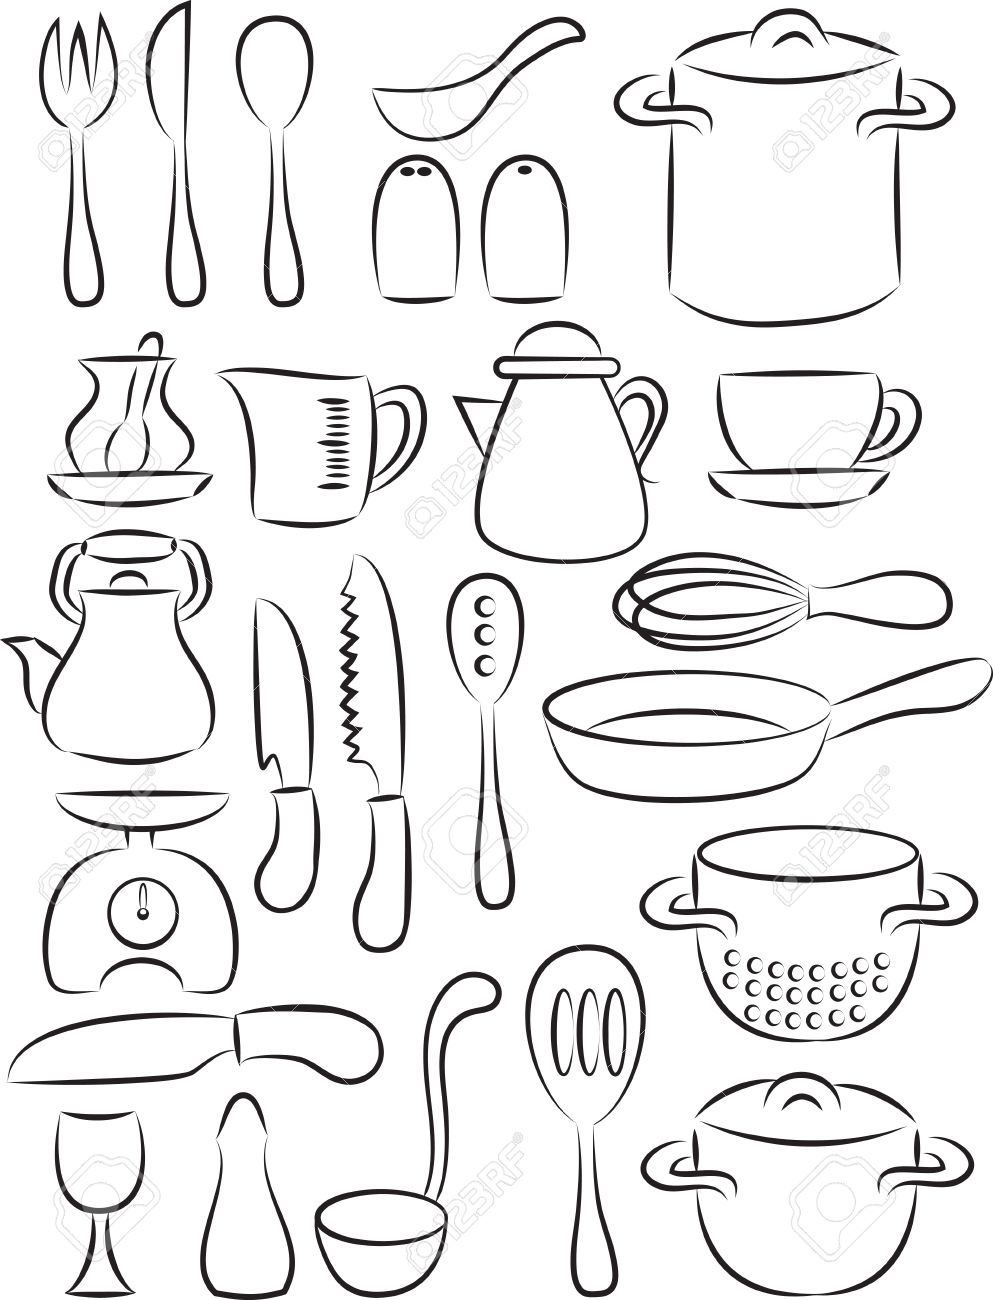 baking tools drawing at getdrawings com free for personal use